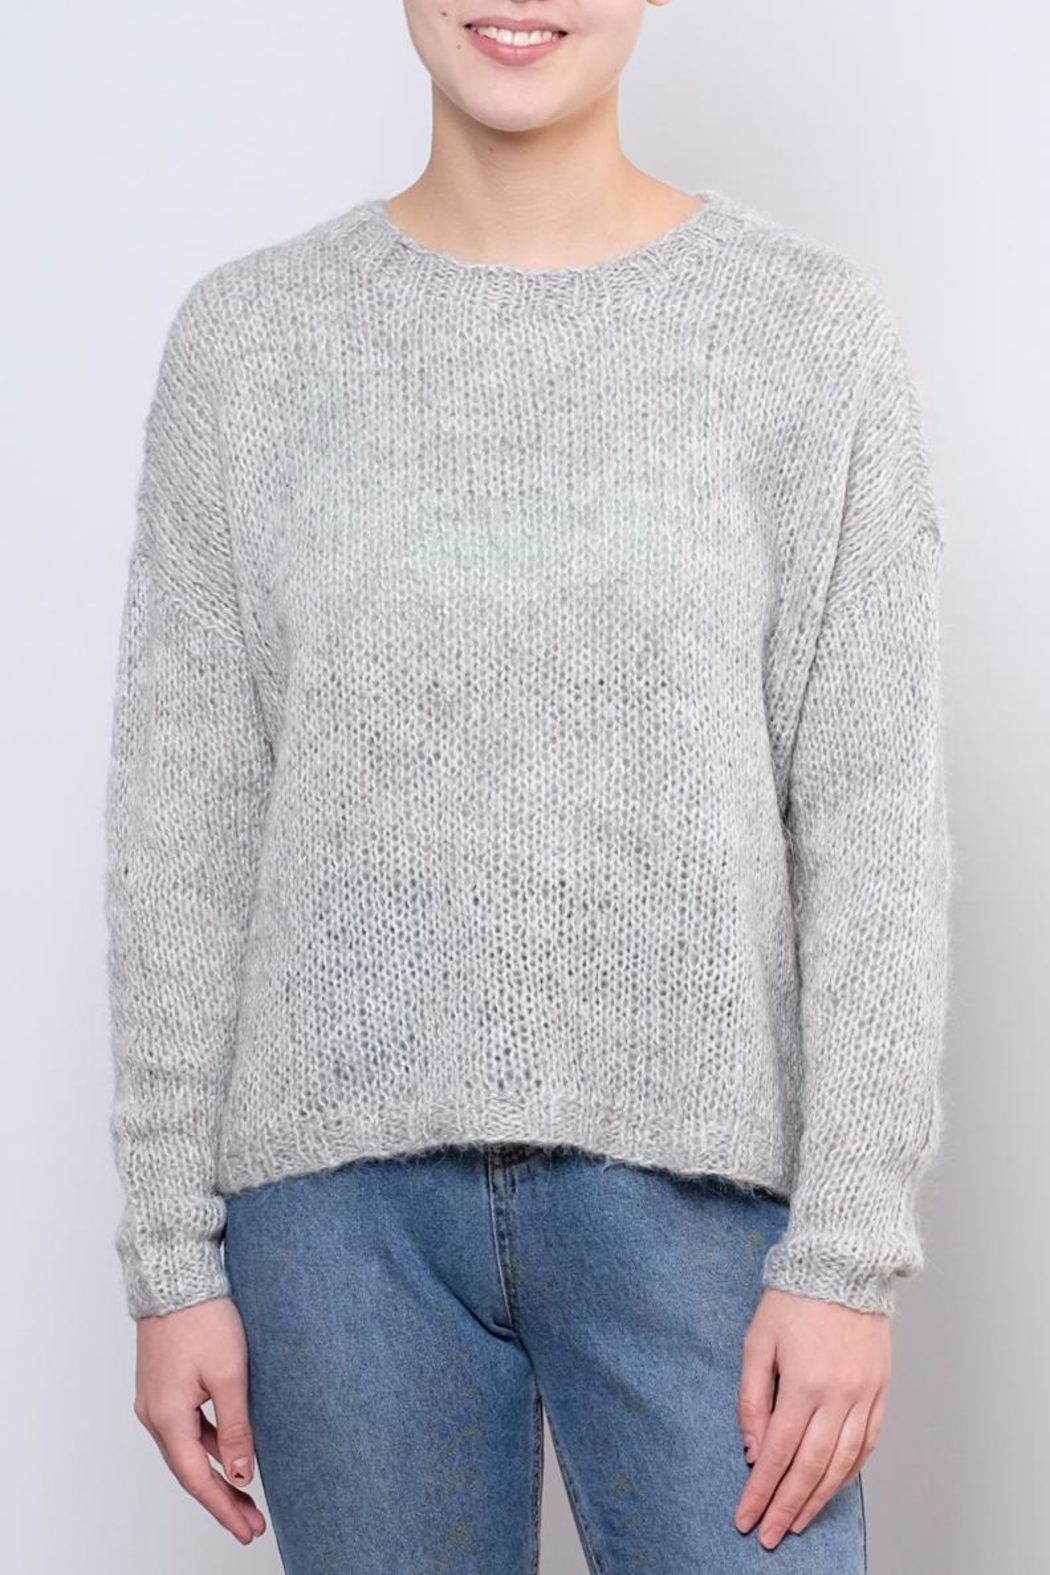 Noisy May Janis Knit Pullover Top - Front Cropped Image